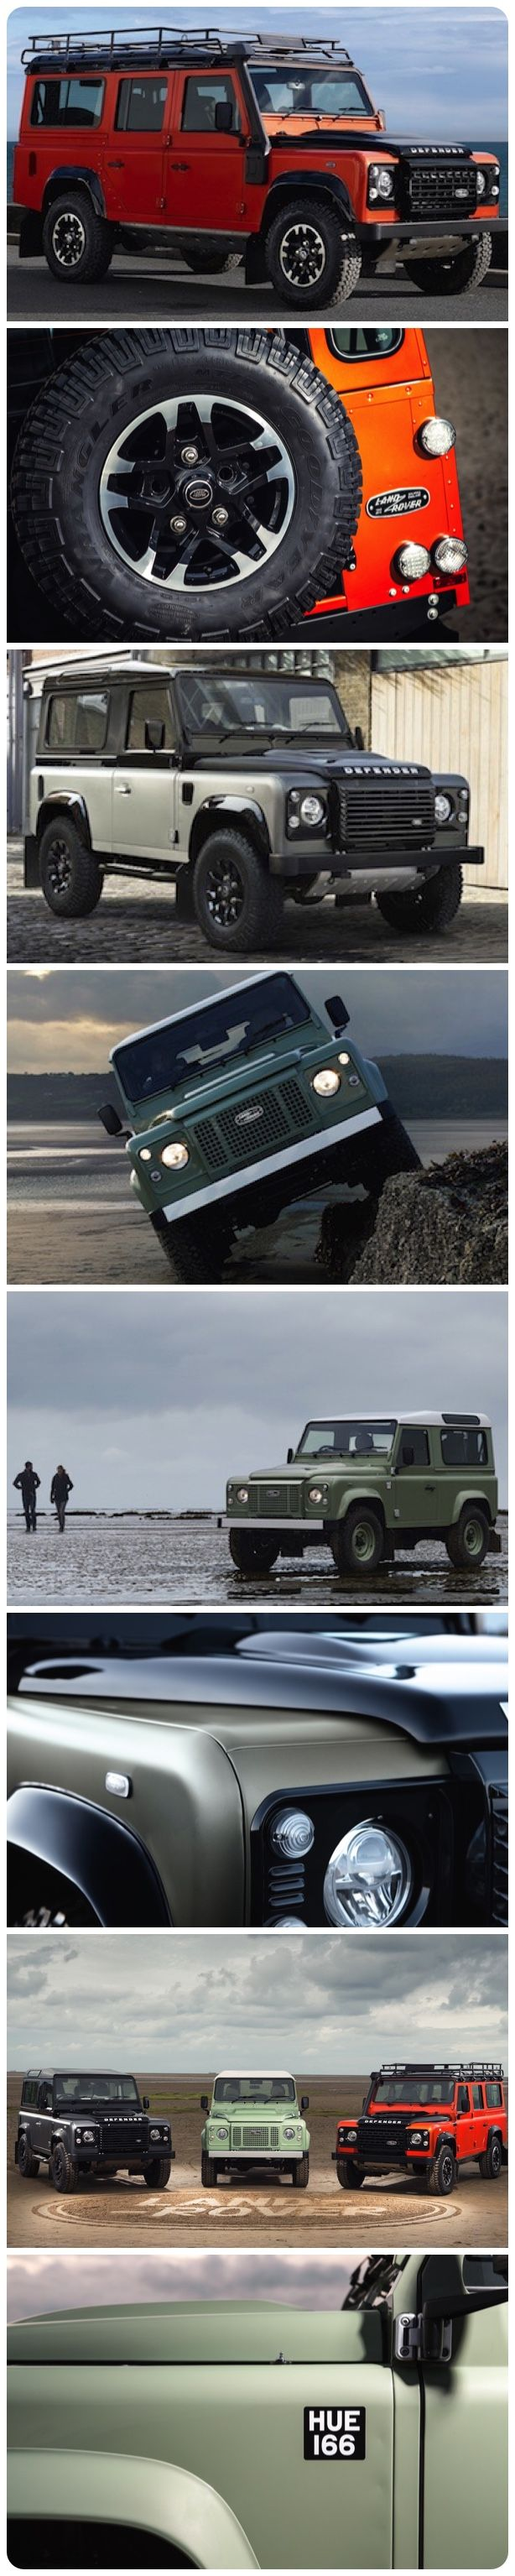 "Land Rover Defender Heritage, Adventure and Autobiography to mark 2015 and the end of production in Solihull, UK.  ""Land Rover wanted to mark the end of Defender production at Solihull with a special edition but coming up with a single identity was impossible, so we developed three very different interpretations of the Defender to reflect its strength and breadth of character.""  Nick Rogers - Land Rover Vehicle Line Director #landrover #4x4 #newcars #limitededition #offroad"